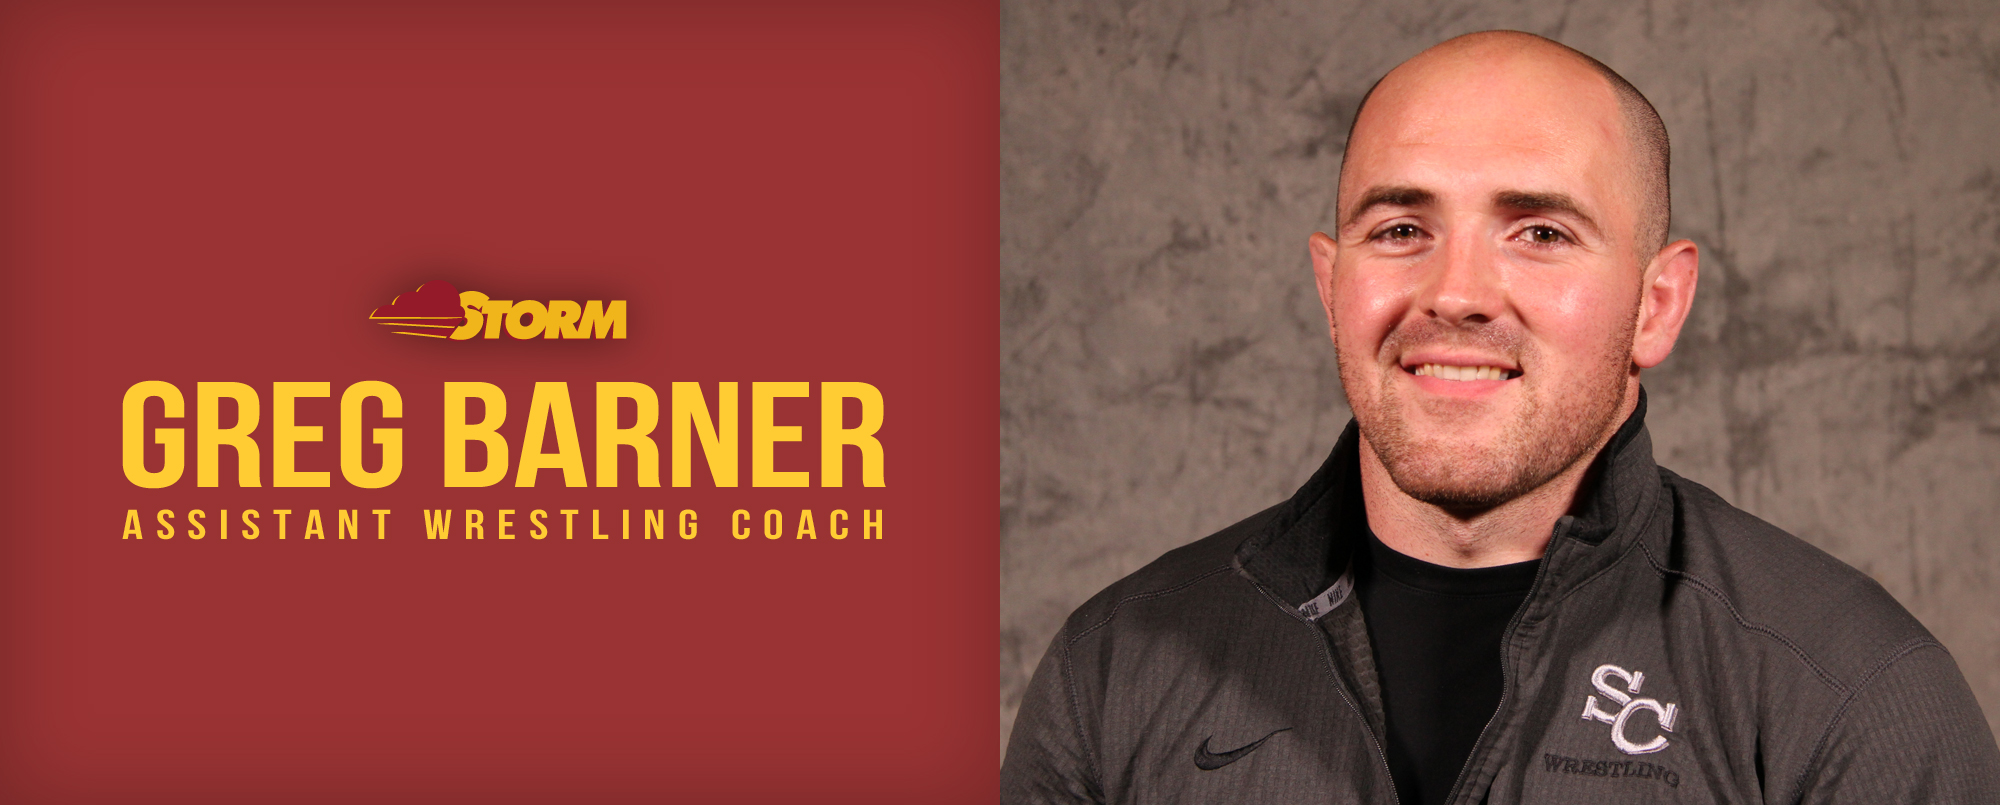 Storm add Barner to wrestling staff